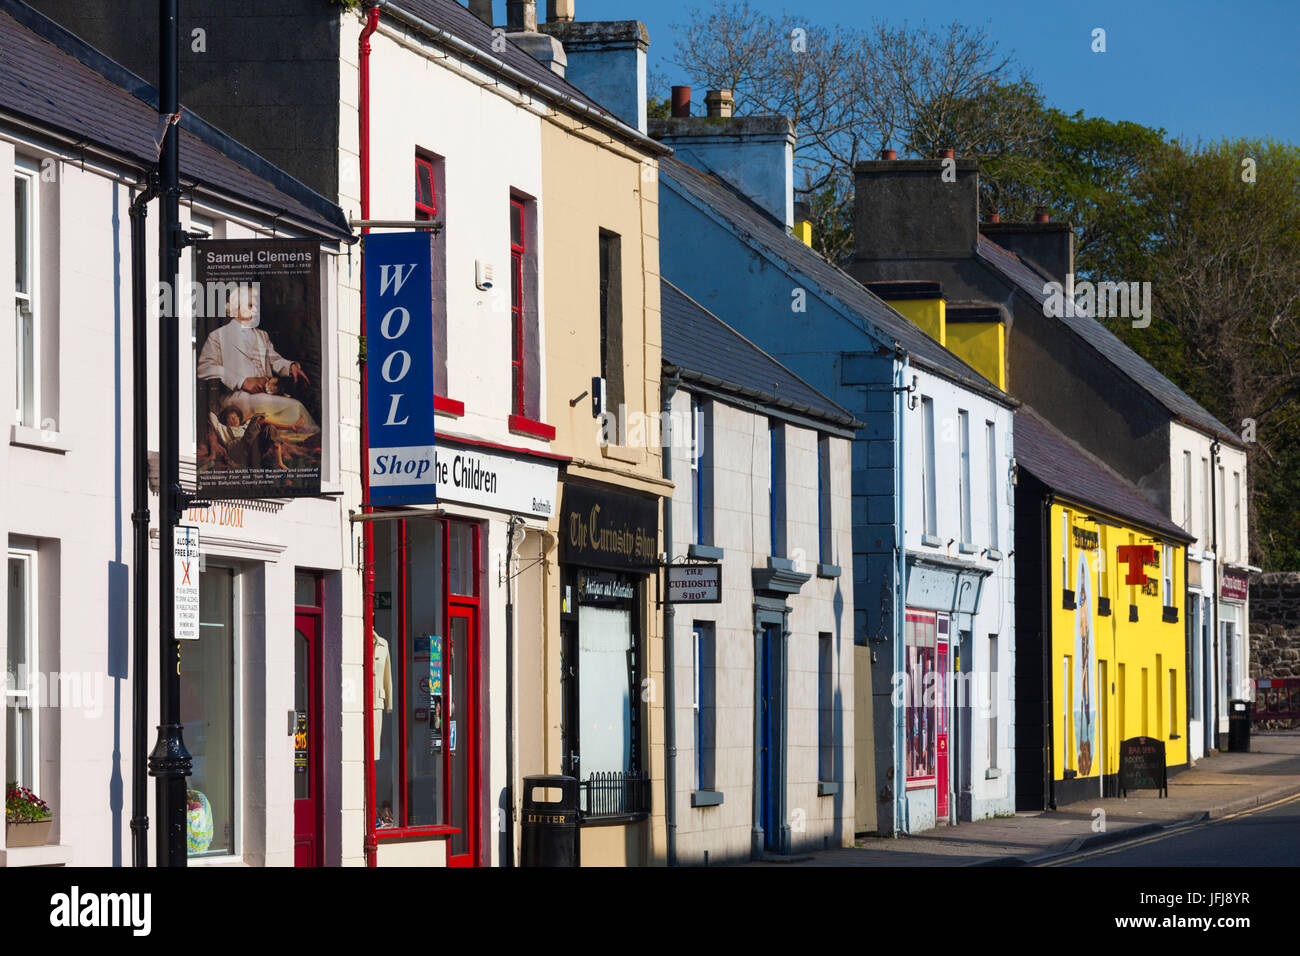 UK, Northern Ireland, County Antrim, Bushmills, town view - Stock Image